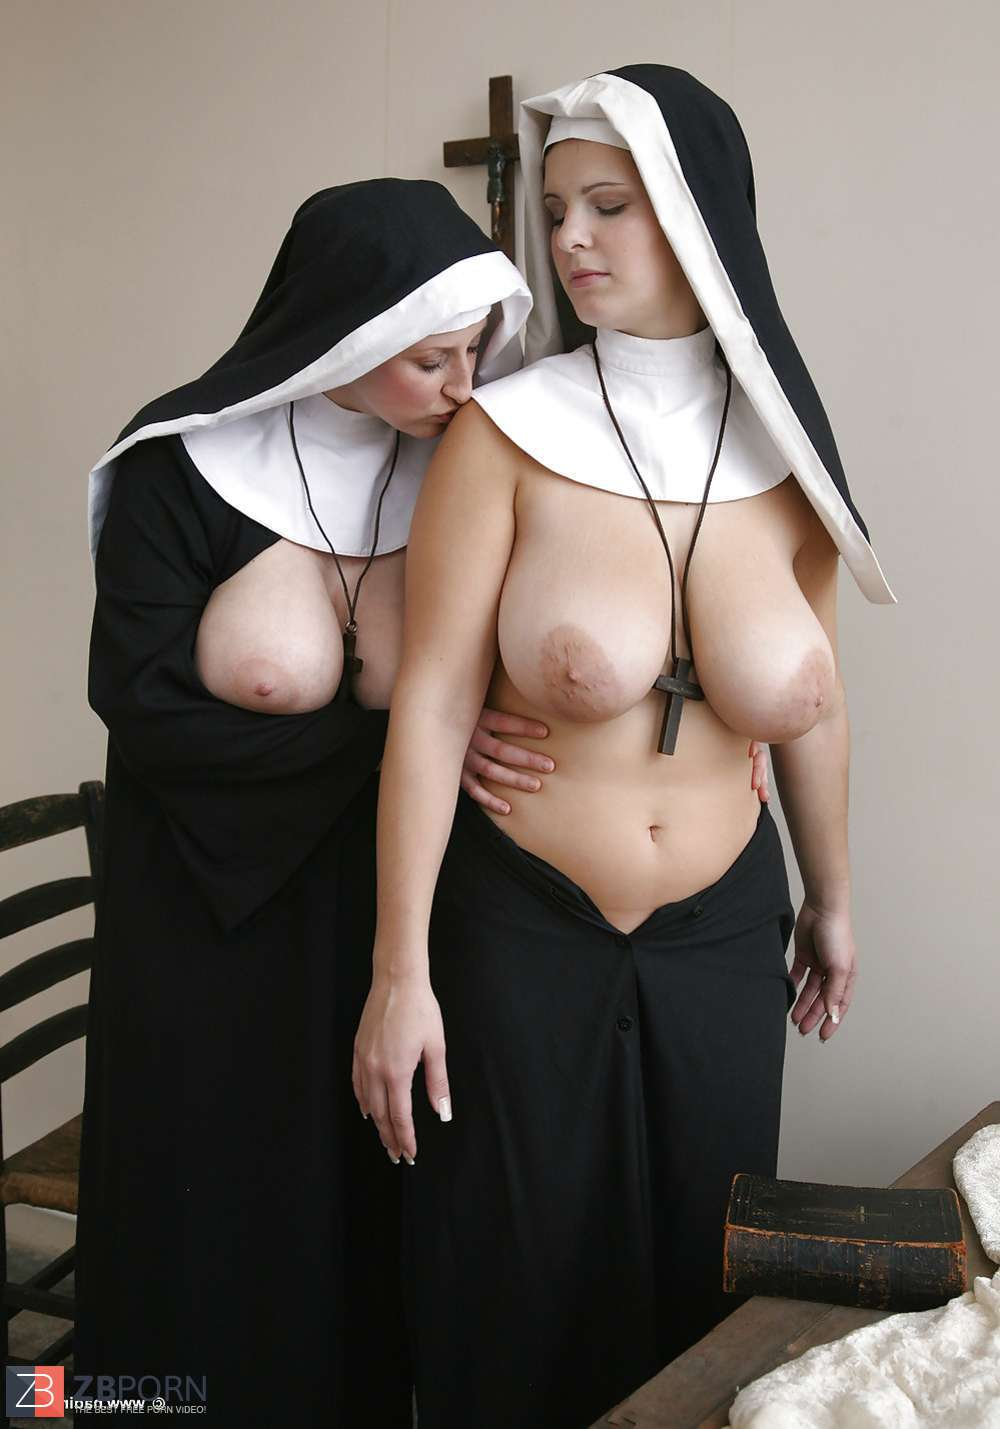 free nun porn Sep 2015  Watch 2 Nuns Fuck in Church video on xHamster, the biggest sex tube site with  tons of free In Church Threesome & Church porn movies!.